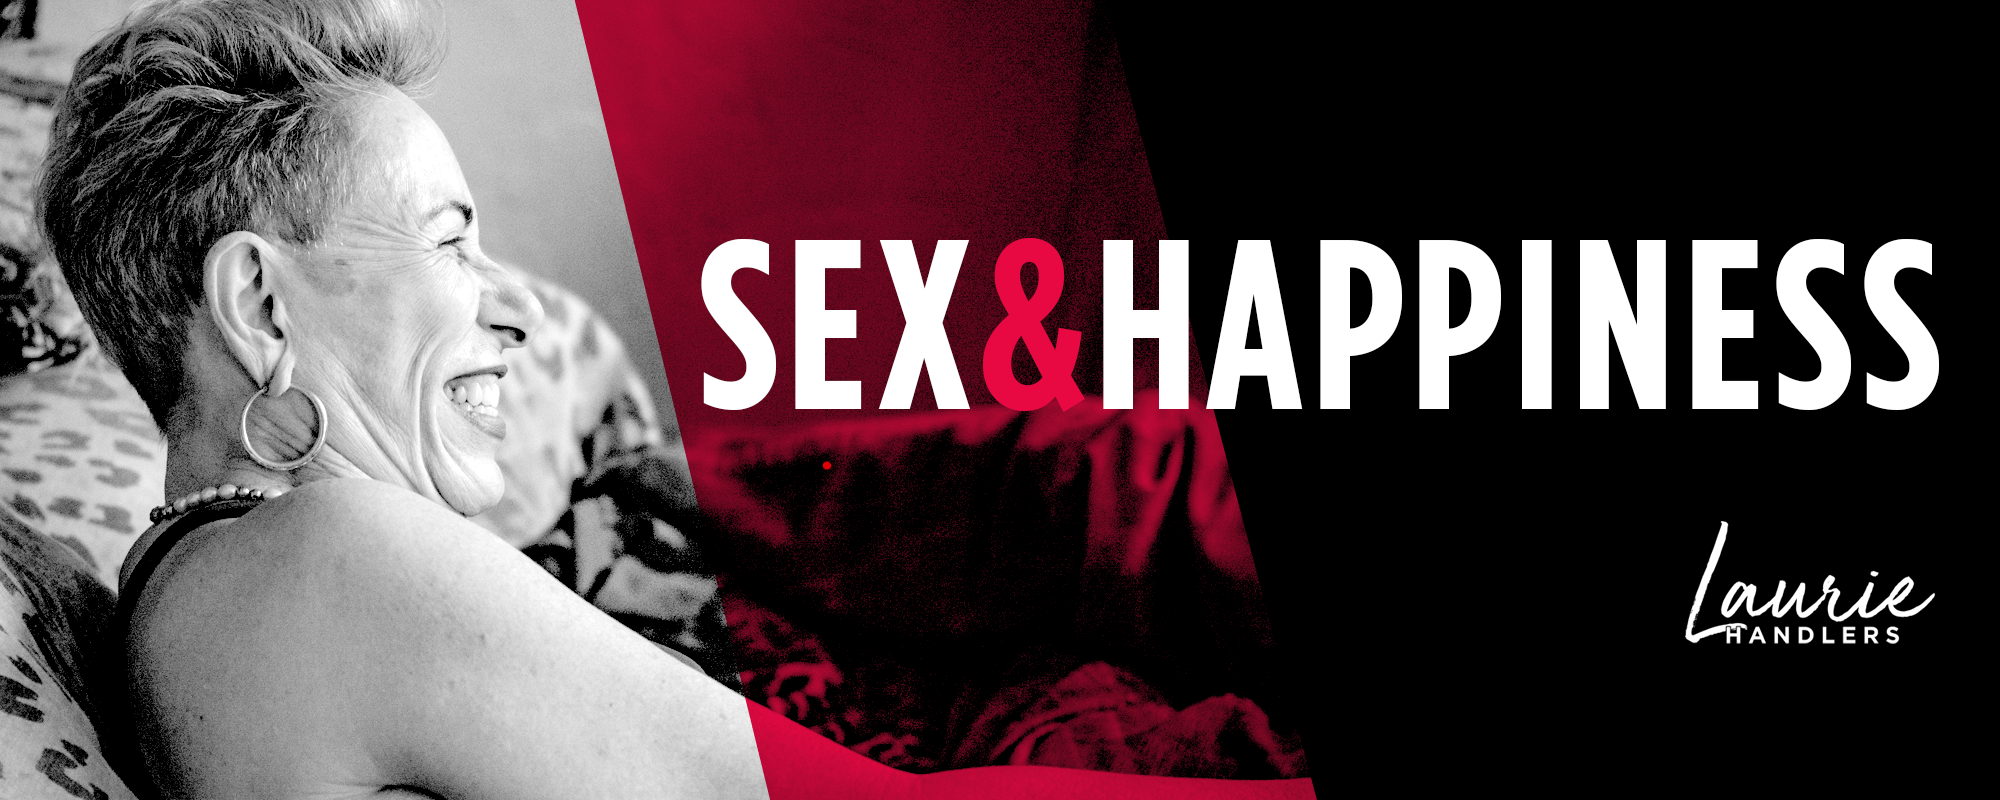 SEx & Happiness with Laurie Handlers